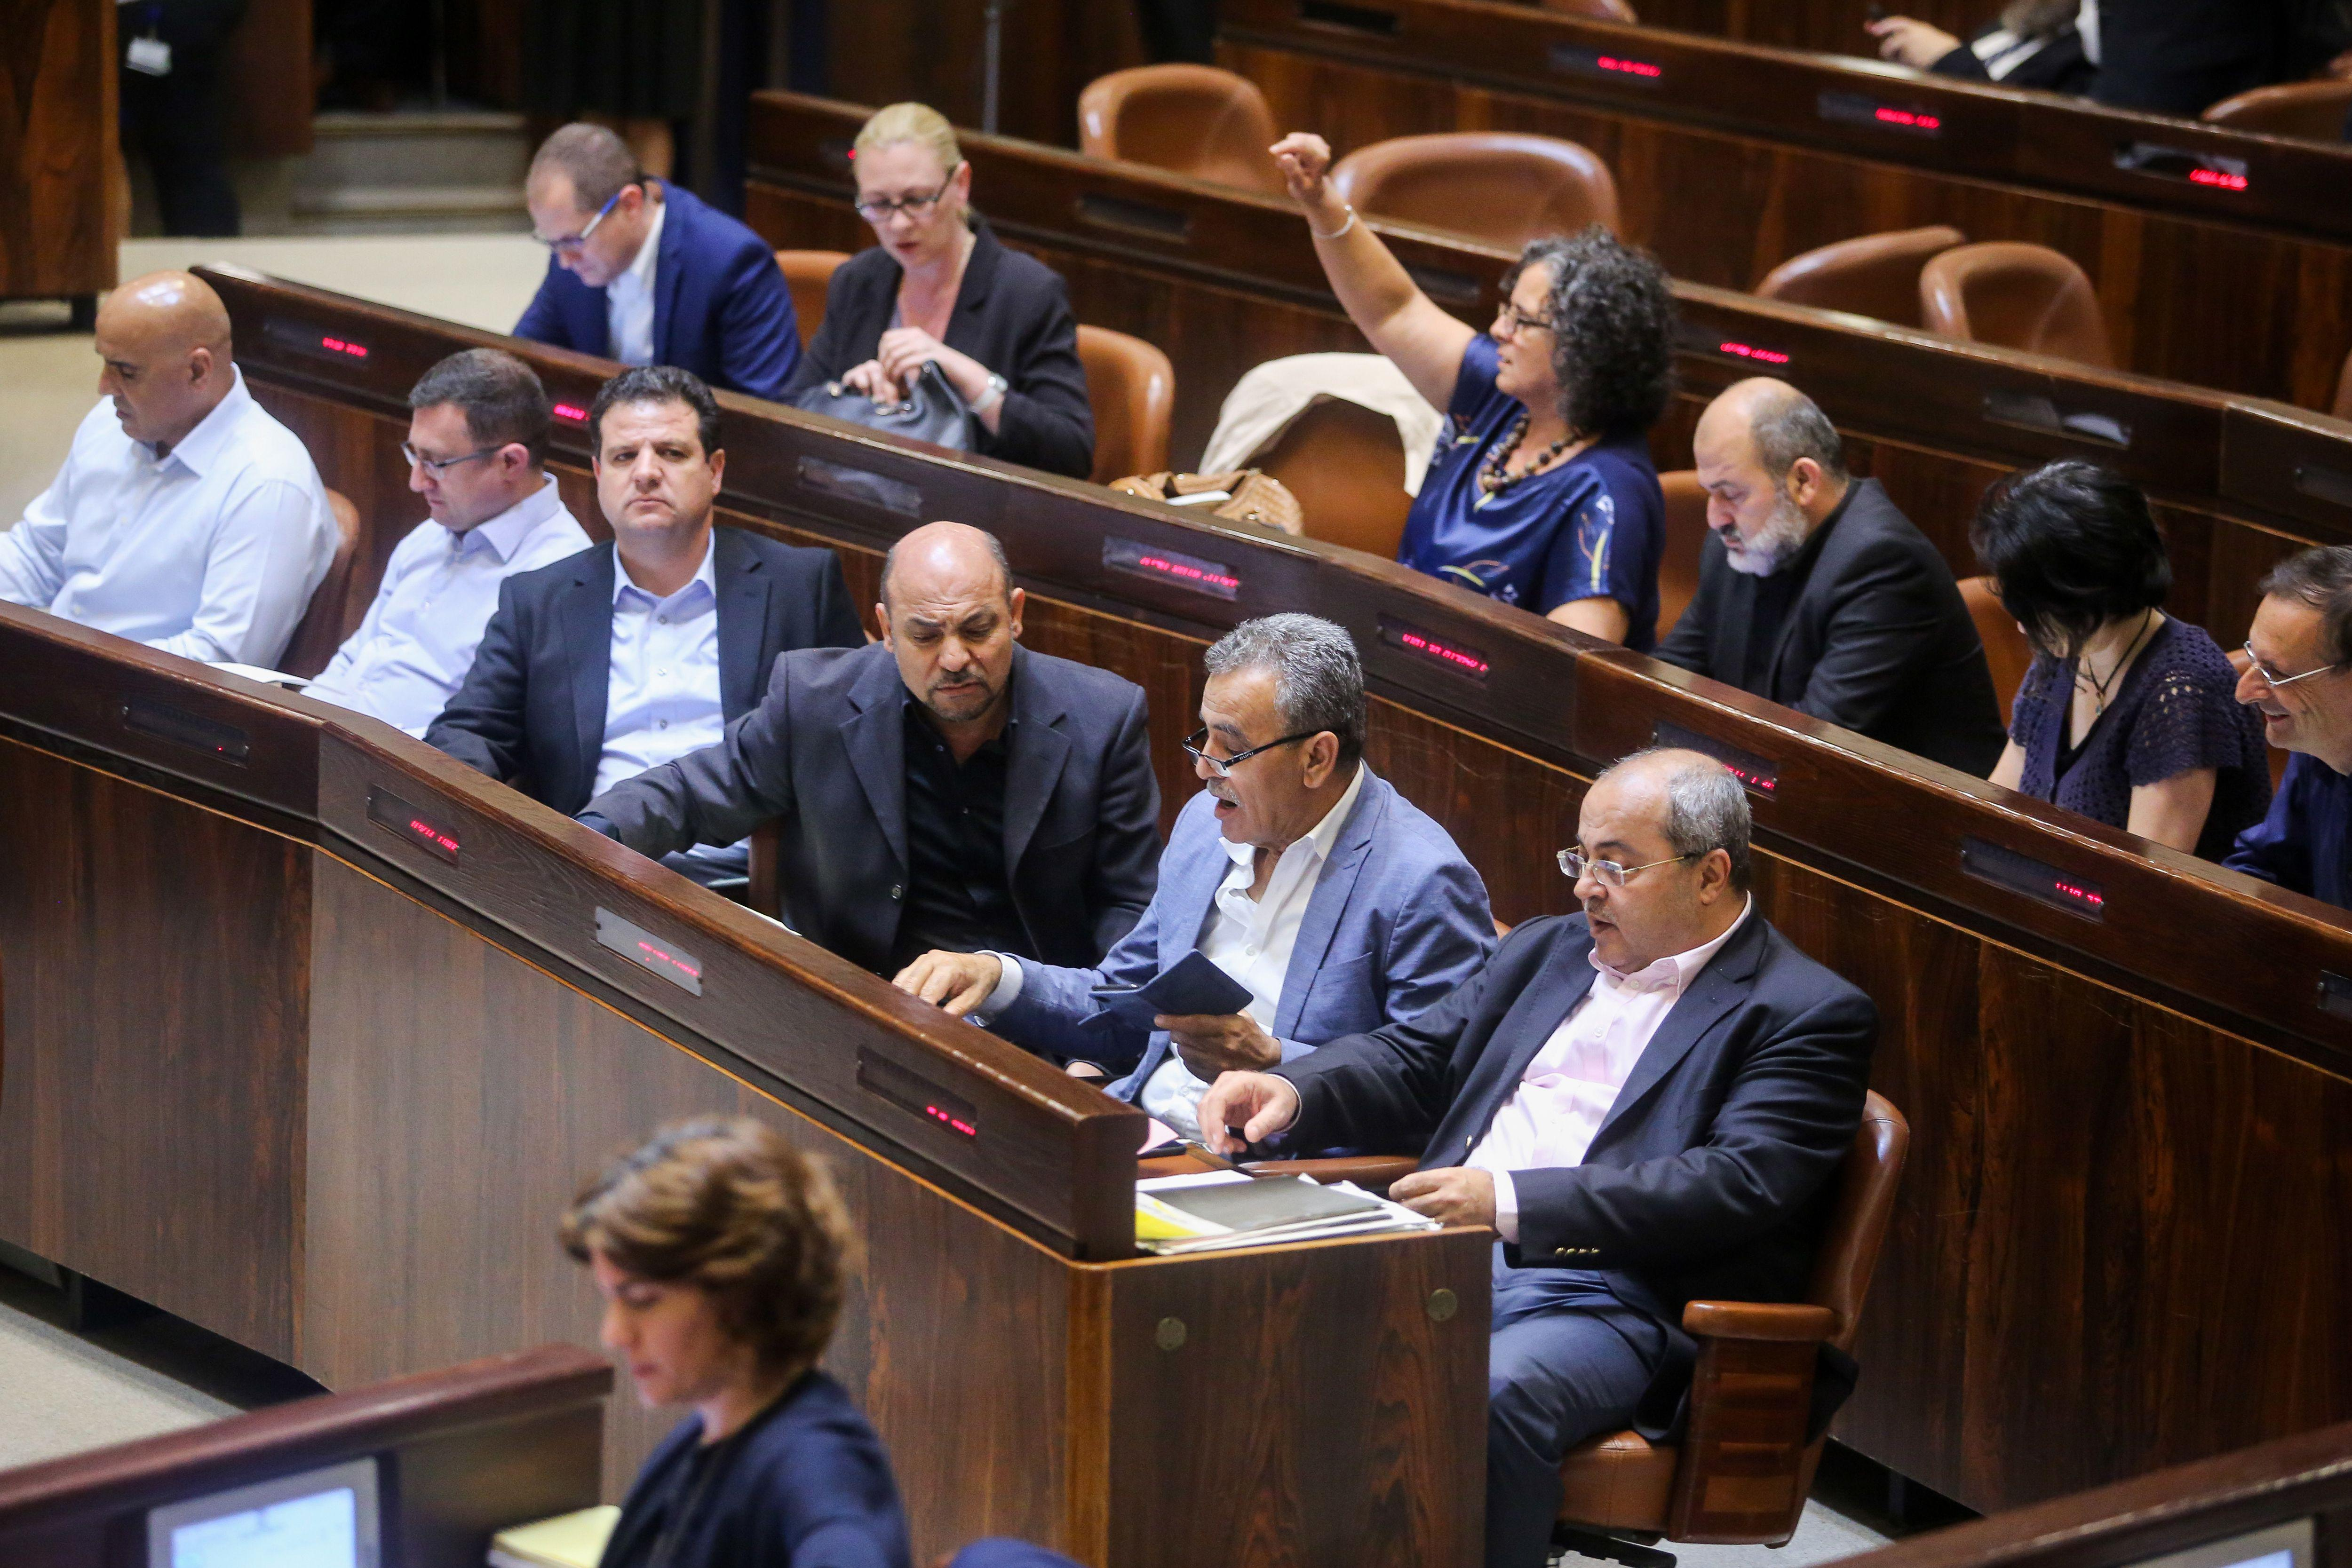 Members of the Israeli parliament sit in the Knesset.